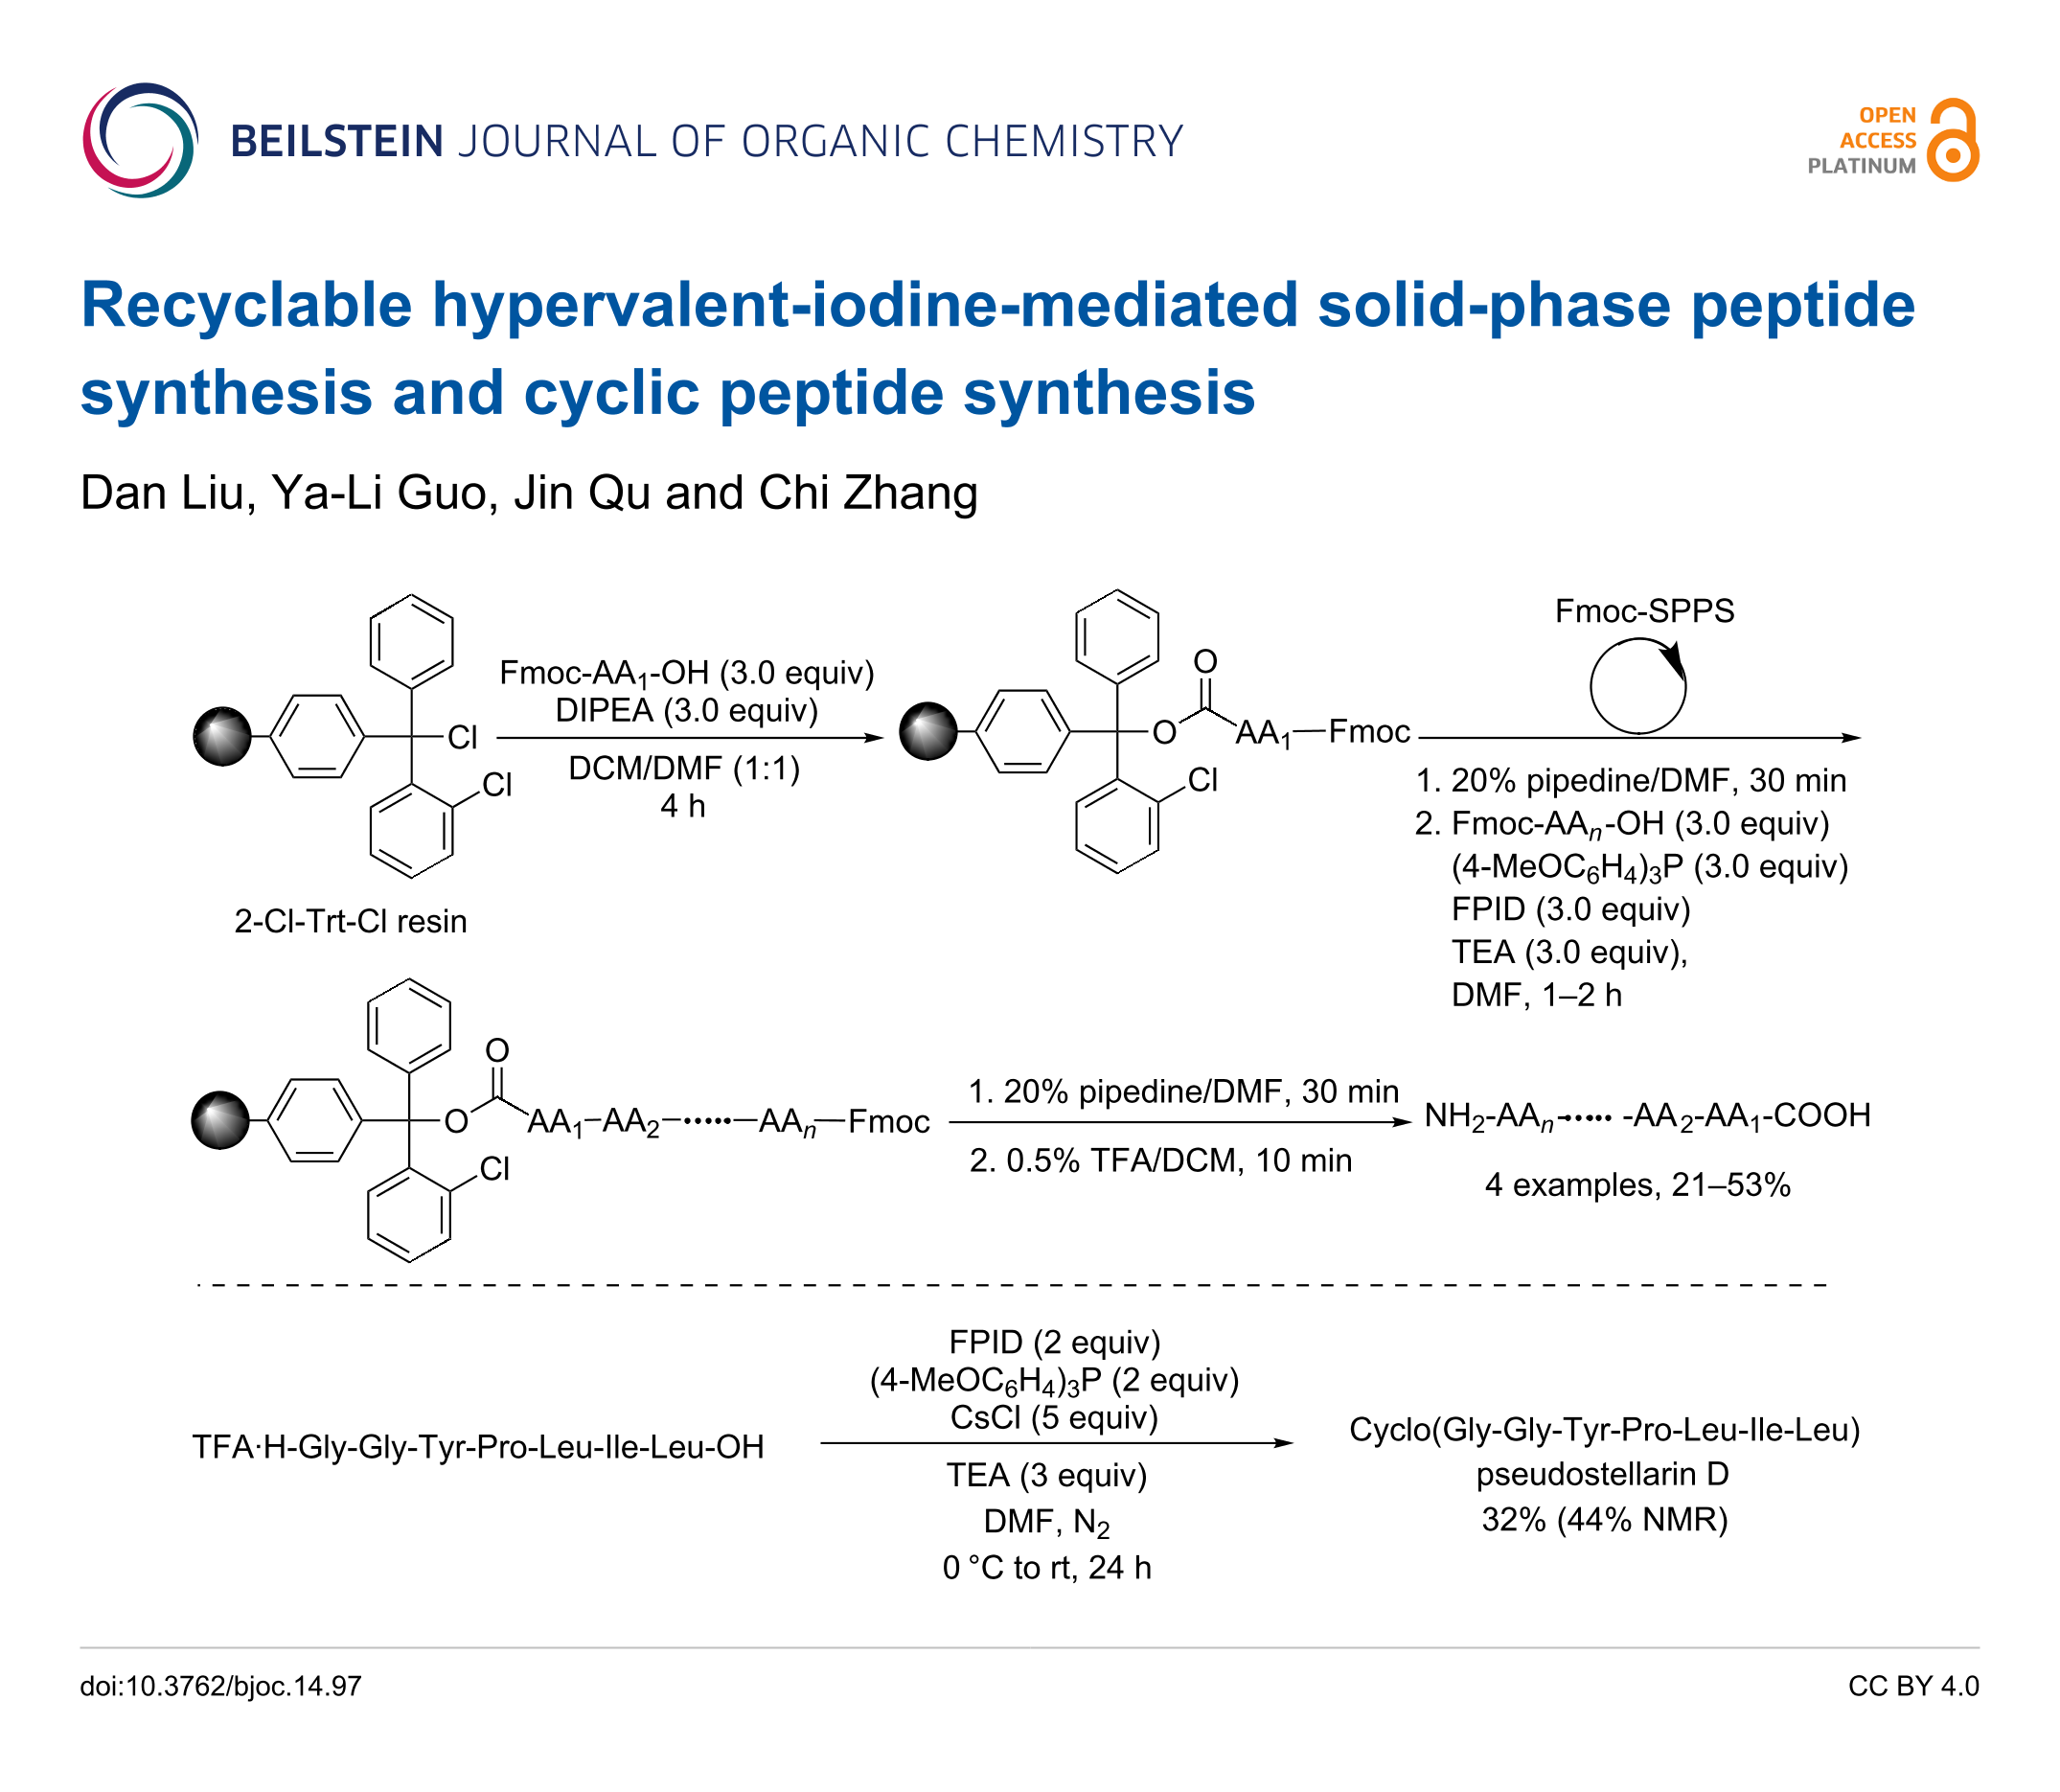 Recyclable hypervalent-iodine-mediated solid-phase peptide